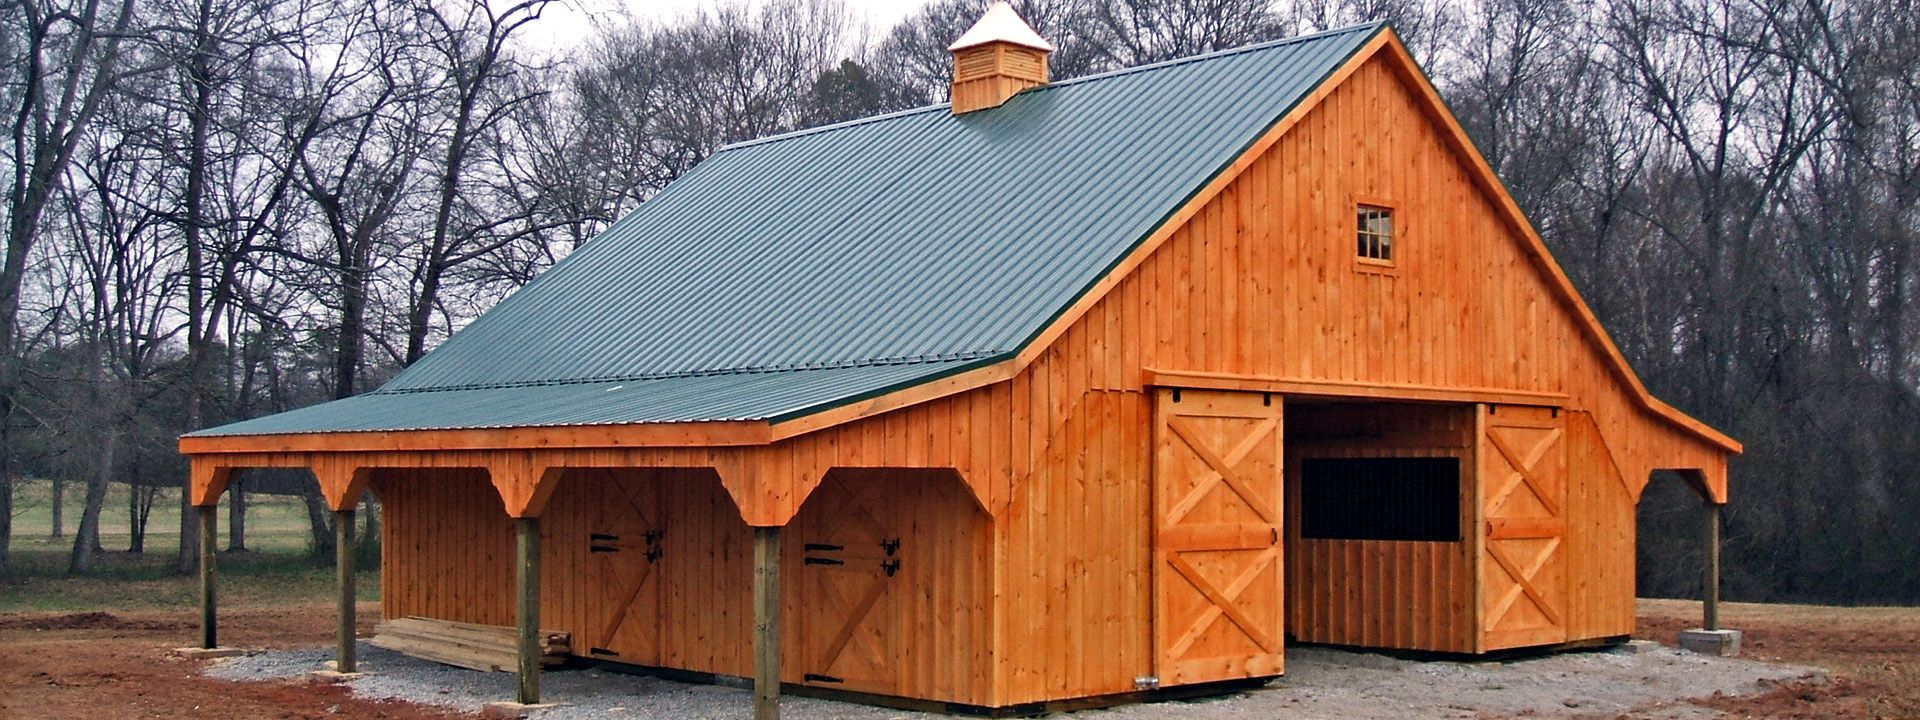 Pin By Lori Makita On Barn Horse Barns Barn Plans Barn